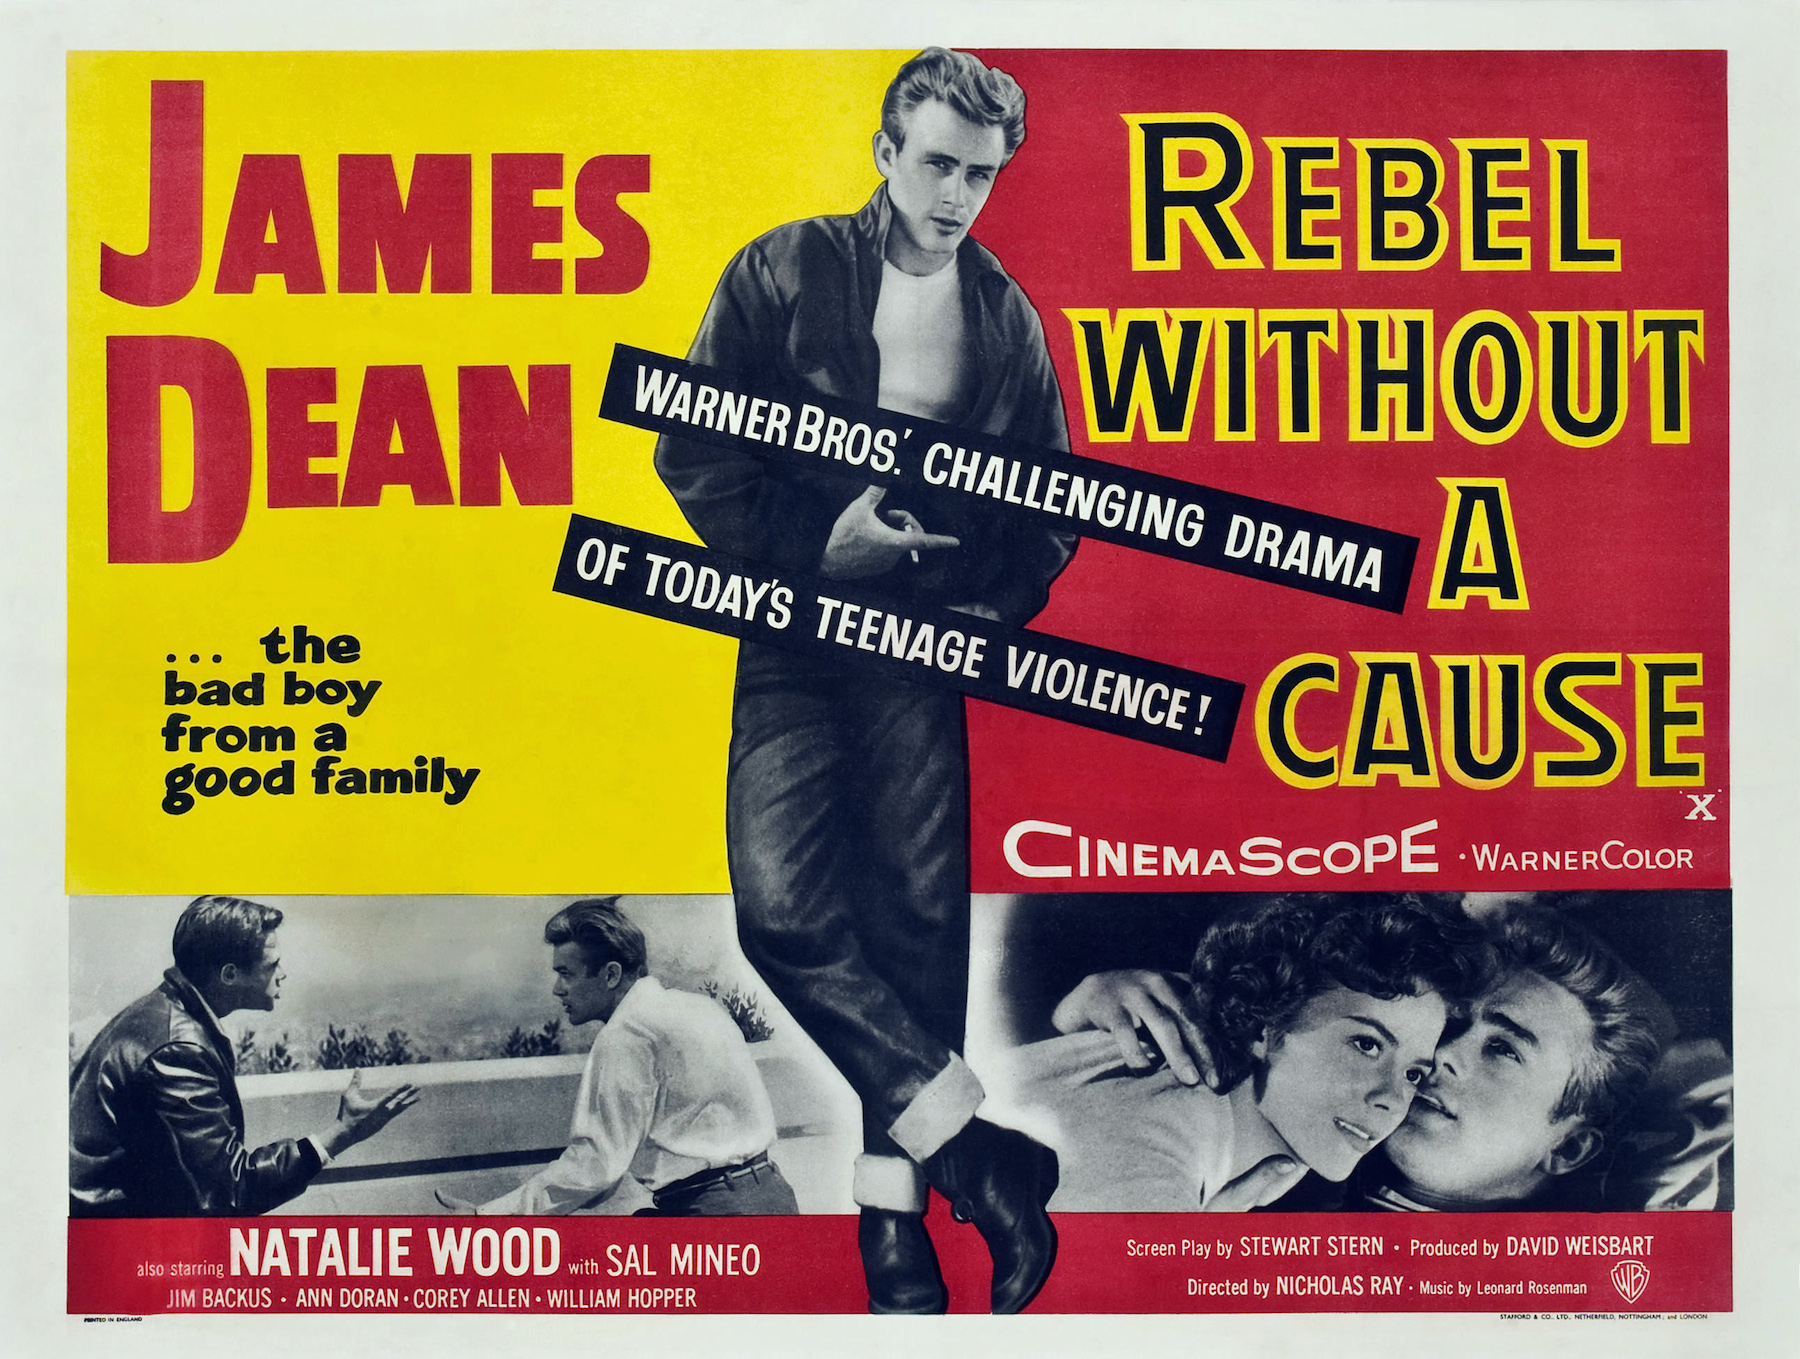 rebel without a cause cause and effect essay